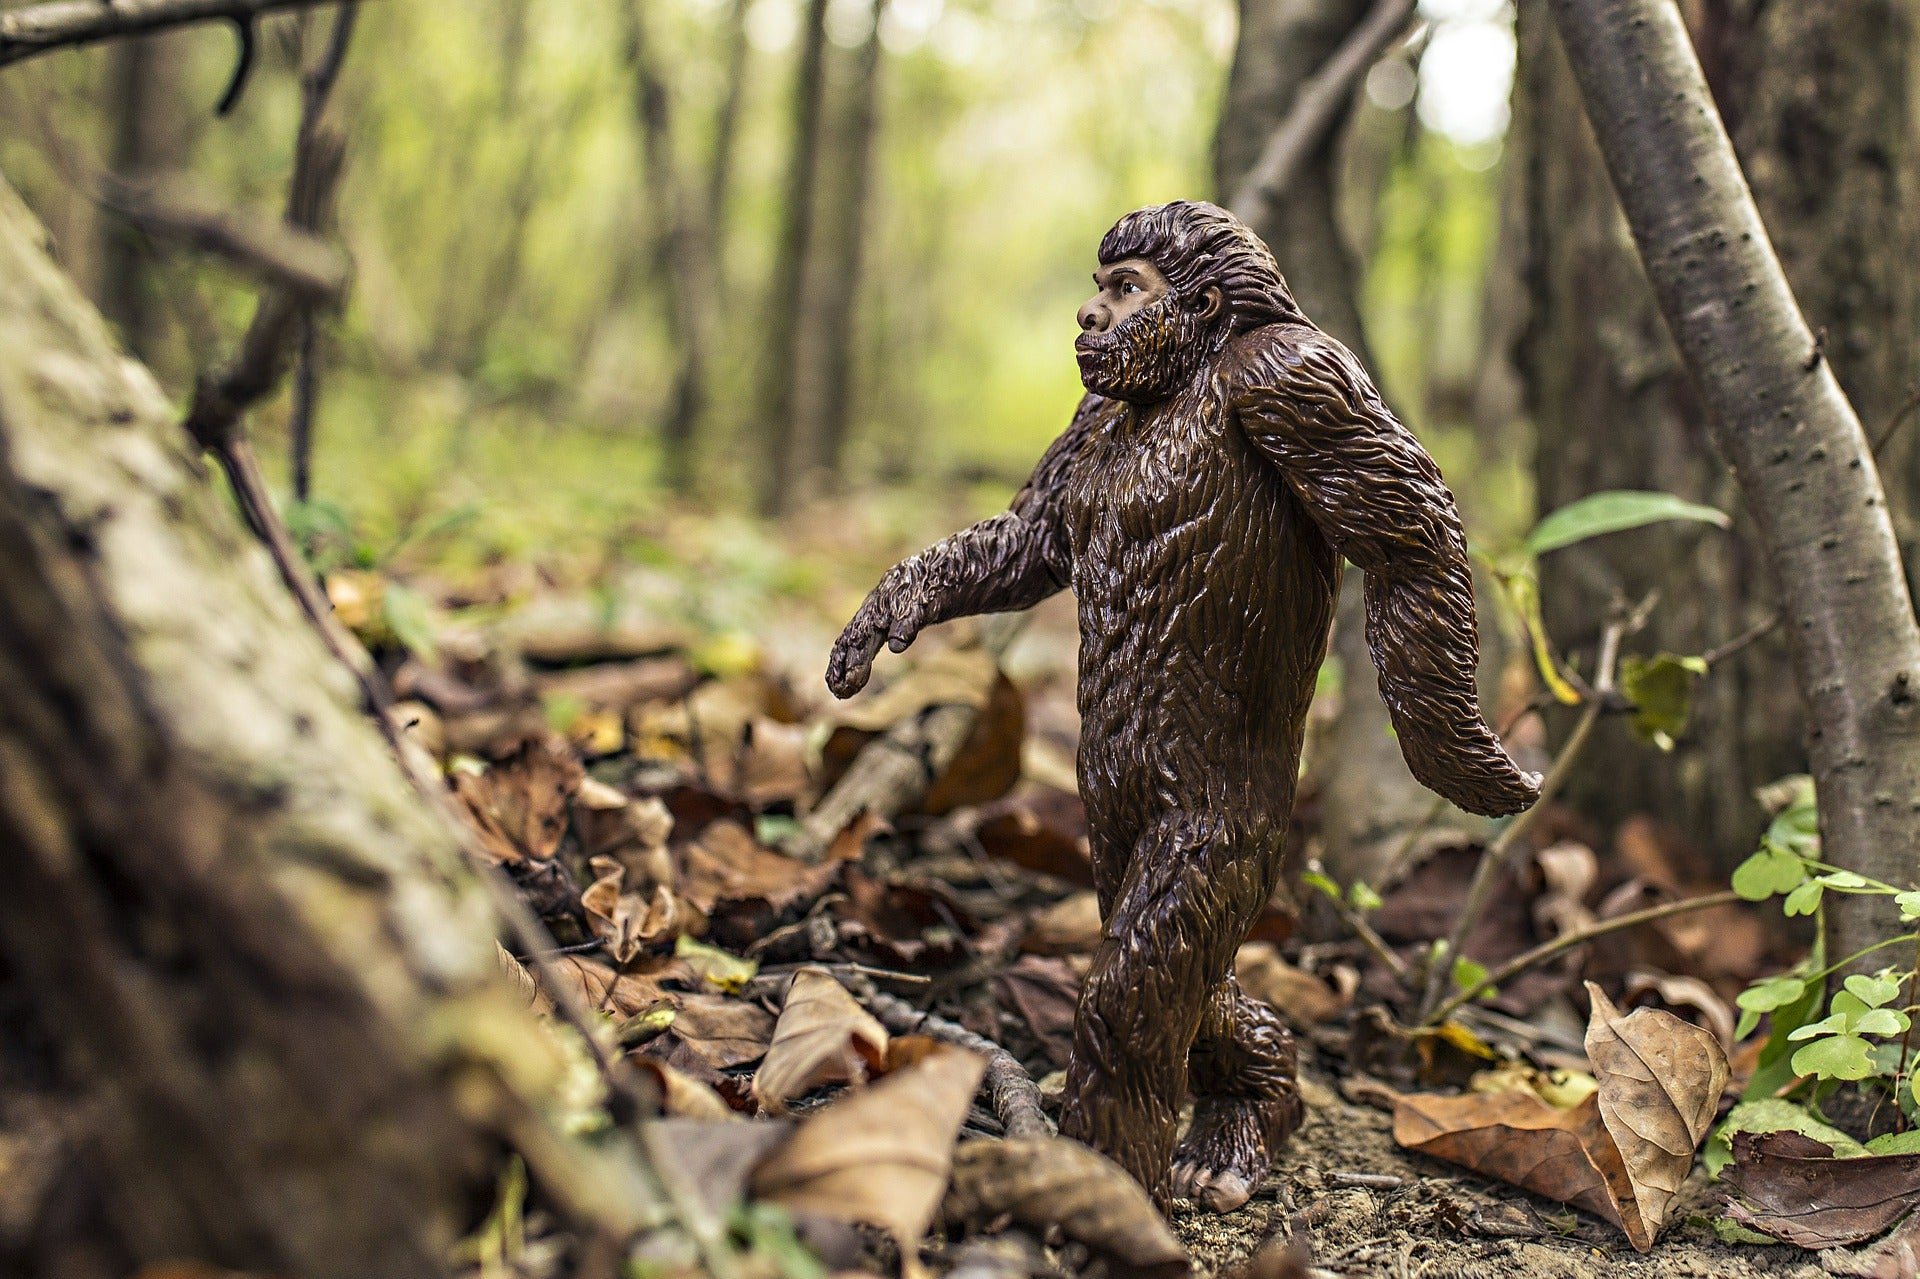 Toy bigfoot in a forest